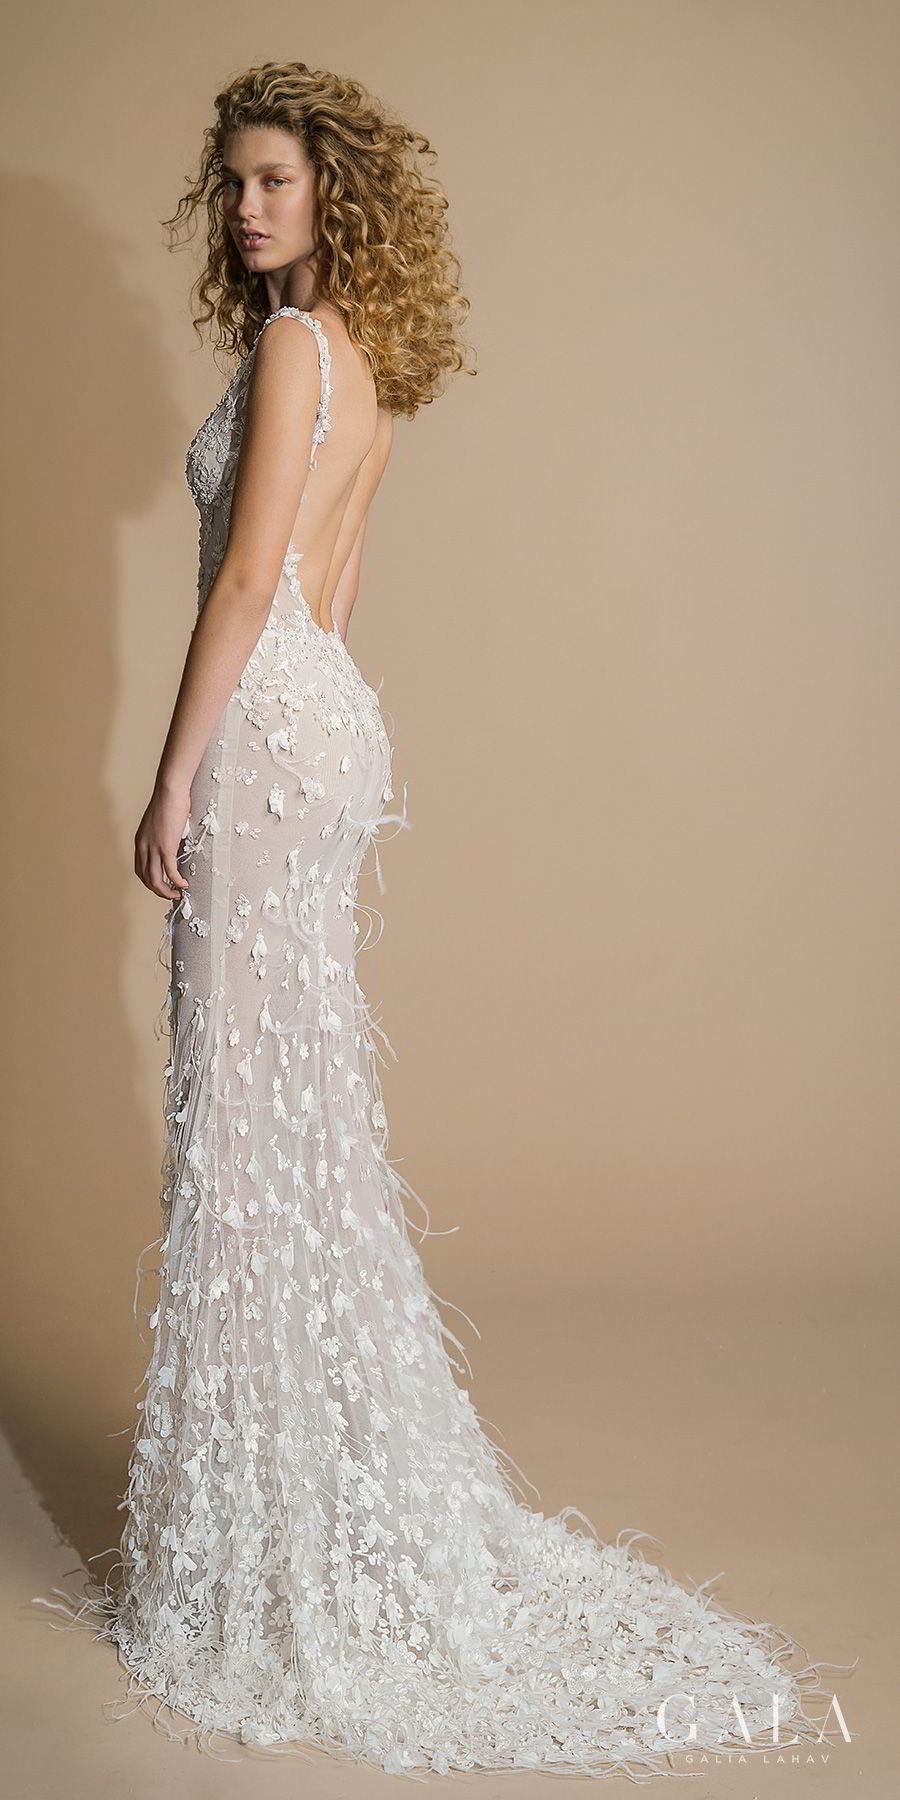 galia lahav gala 2019 bridal sleeveless with strap sheer bateau deep v neck full embellishment elegant fit and flare wedding dress low open back sweep train (108) bv